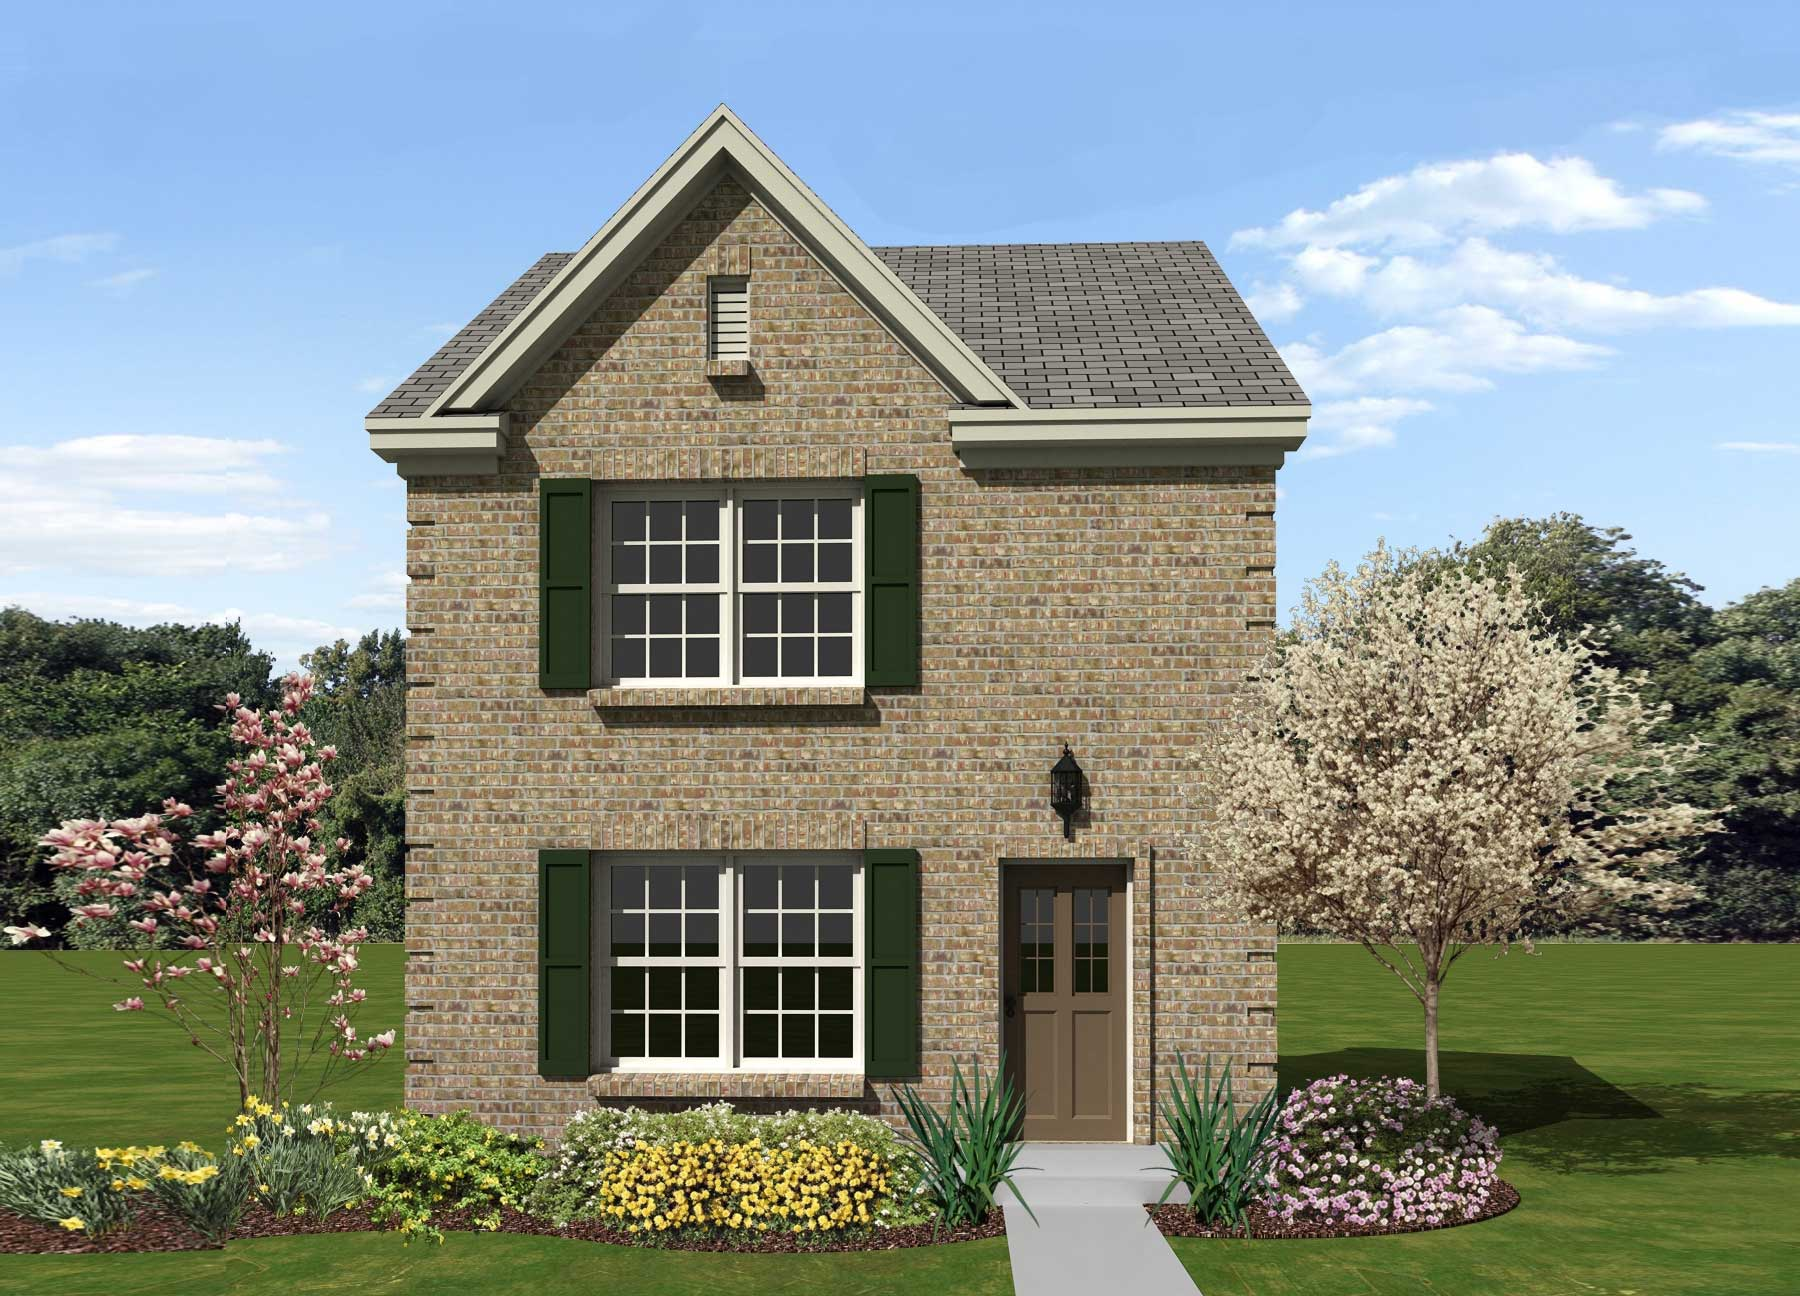 Georgian Home Plan 2 Bedrms 1 5 Baths 1107 Sq Ft